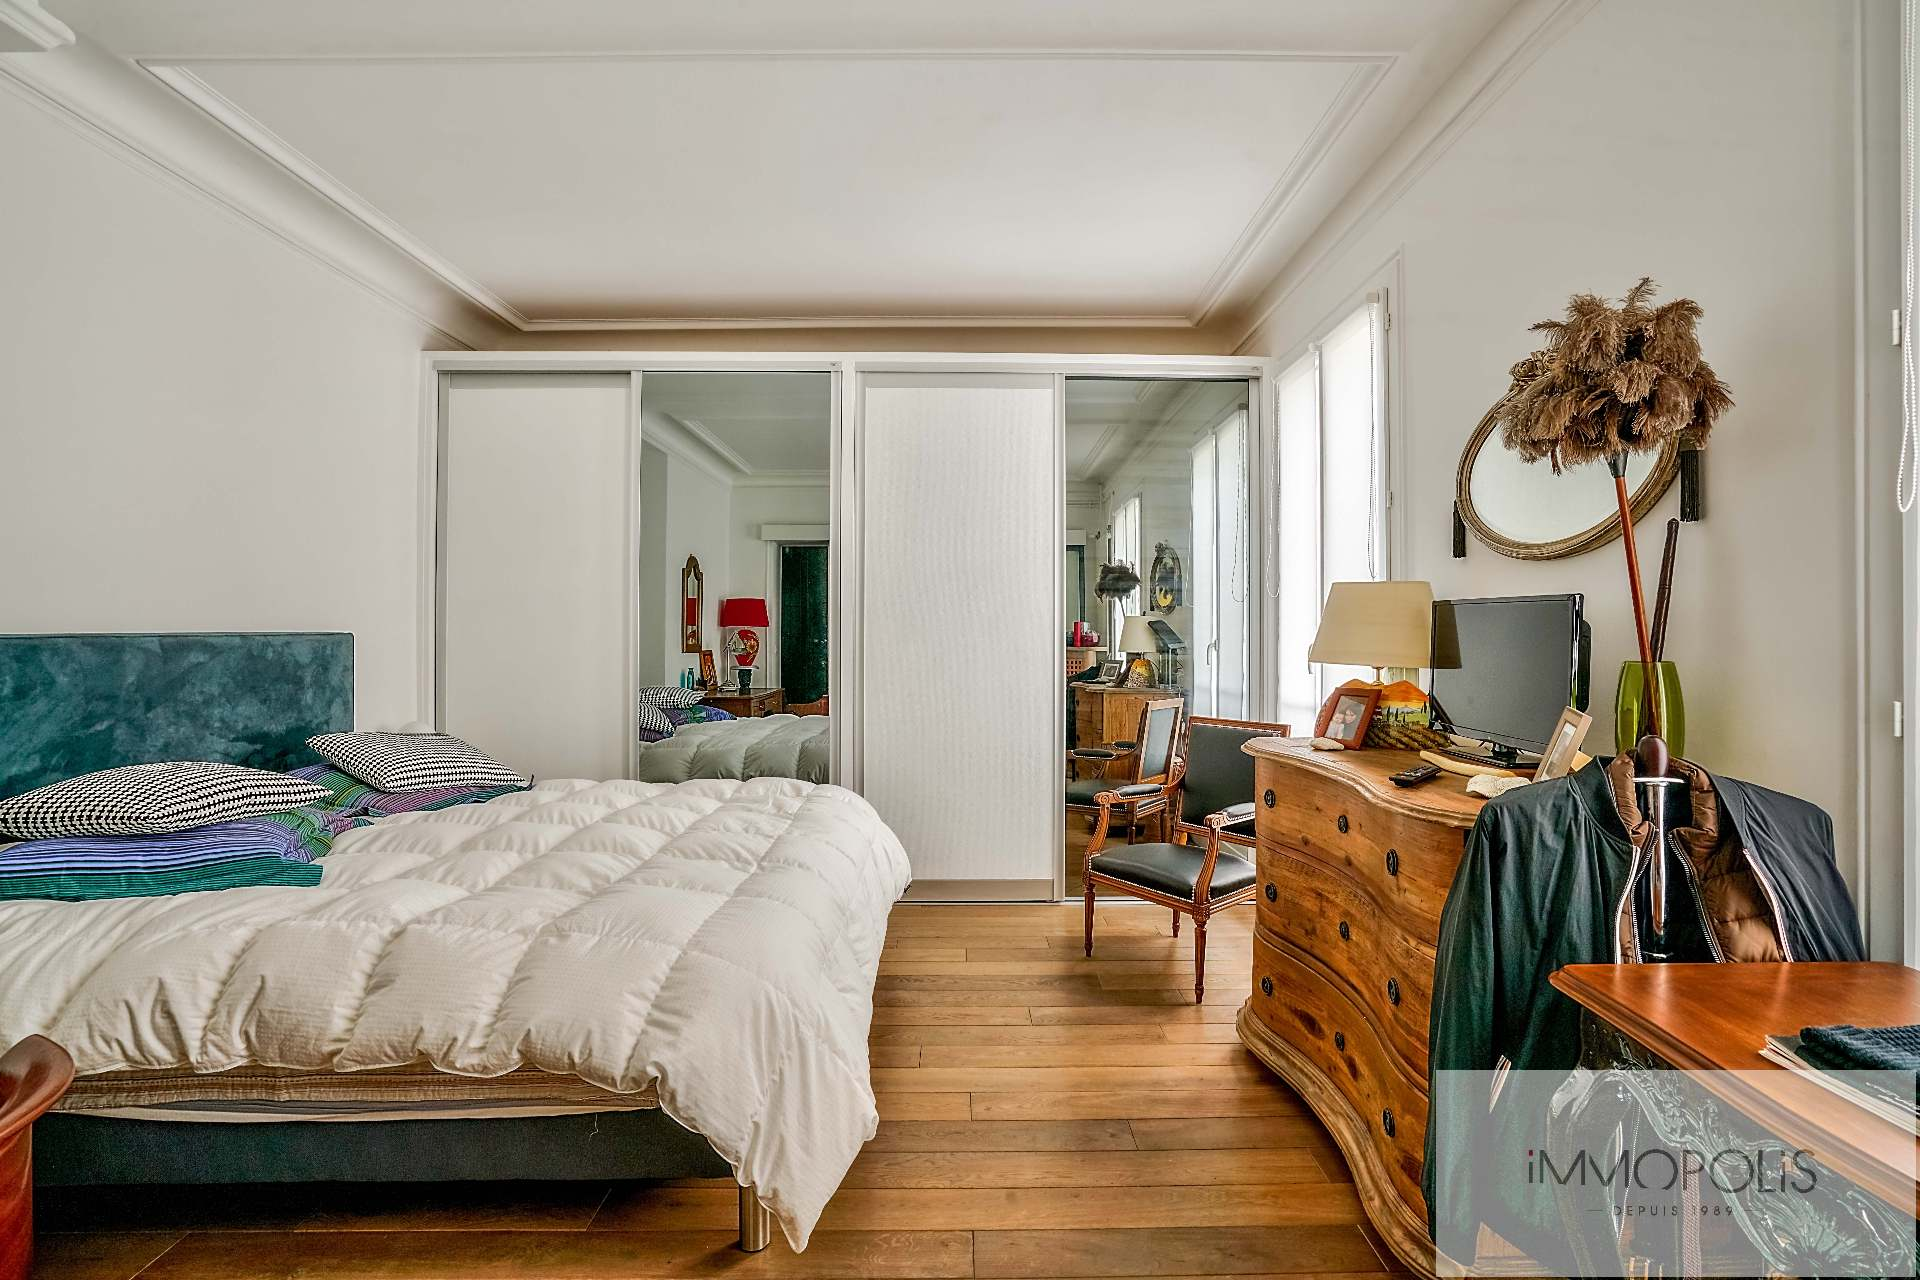 Abbesses, rue Constance: superb 3-room apartment (1 bedroom) on the 3rd floor with elevator: very nice amenities! 5